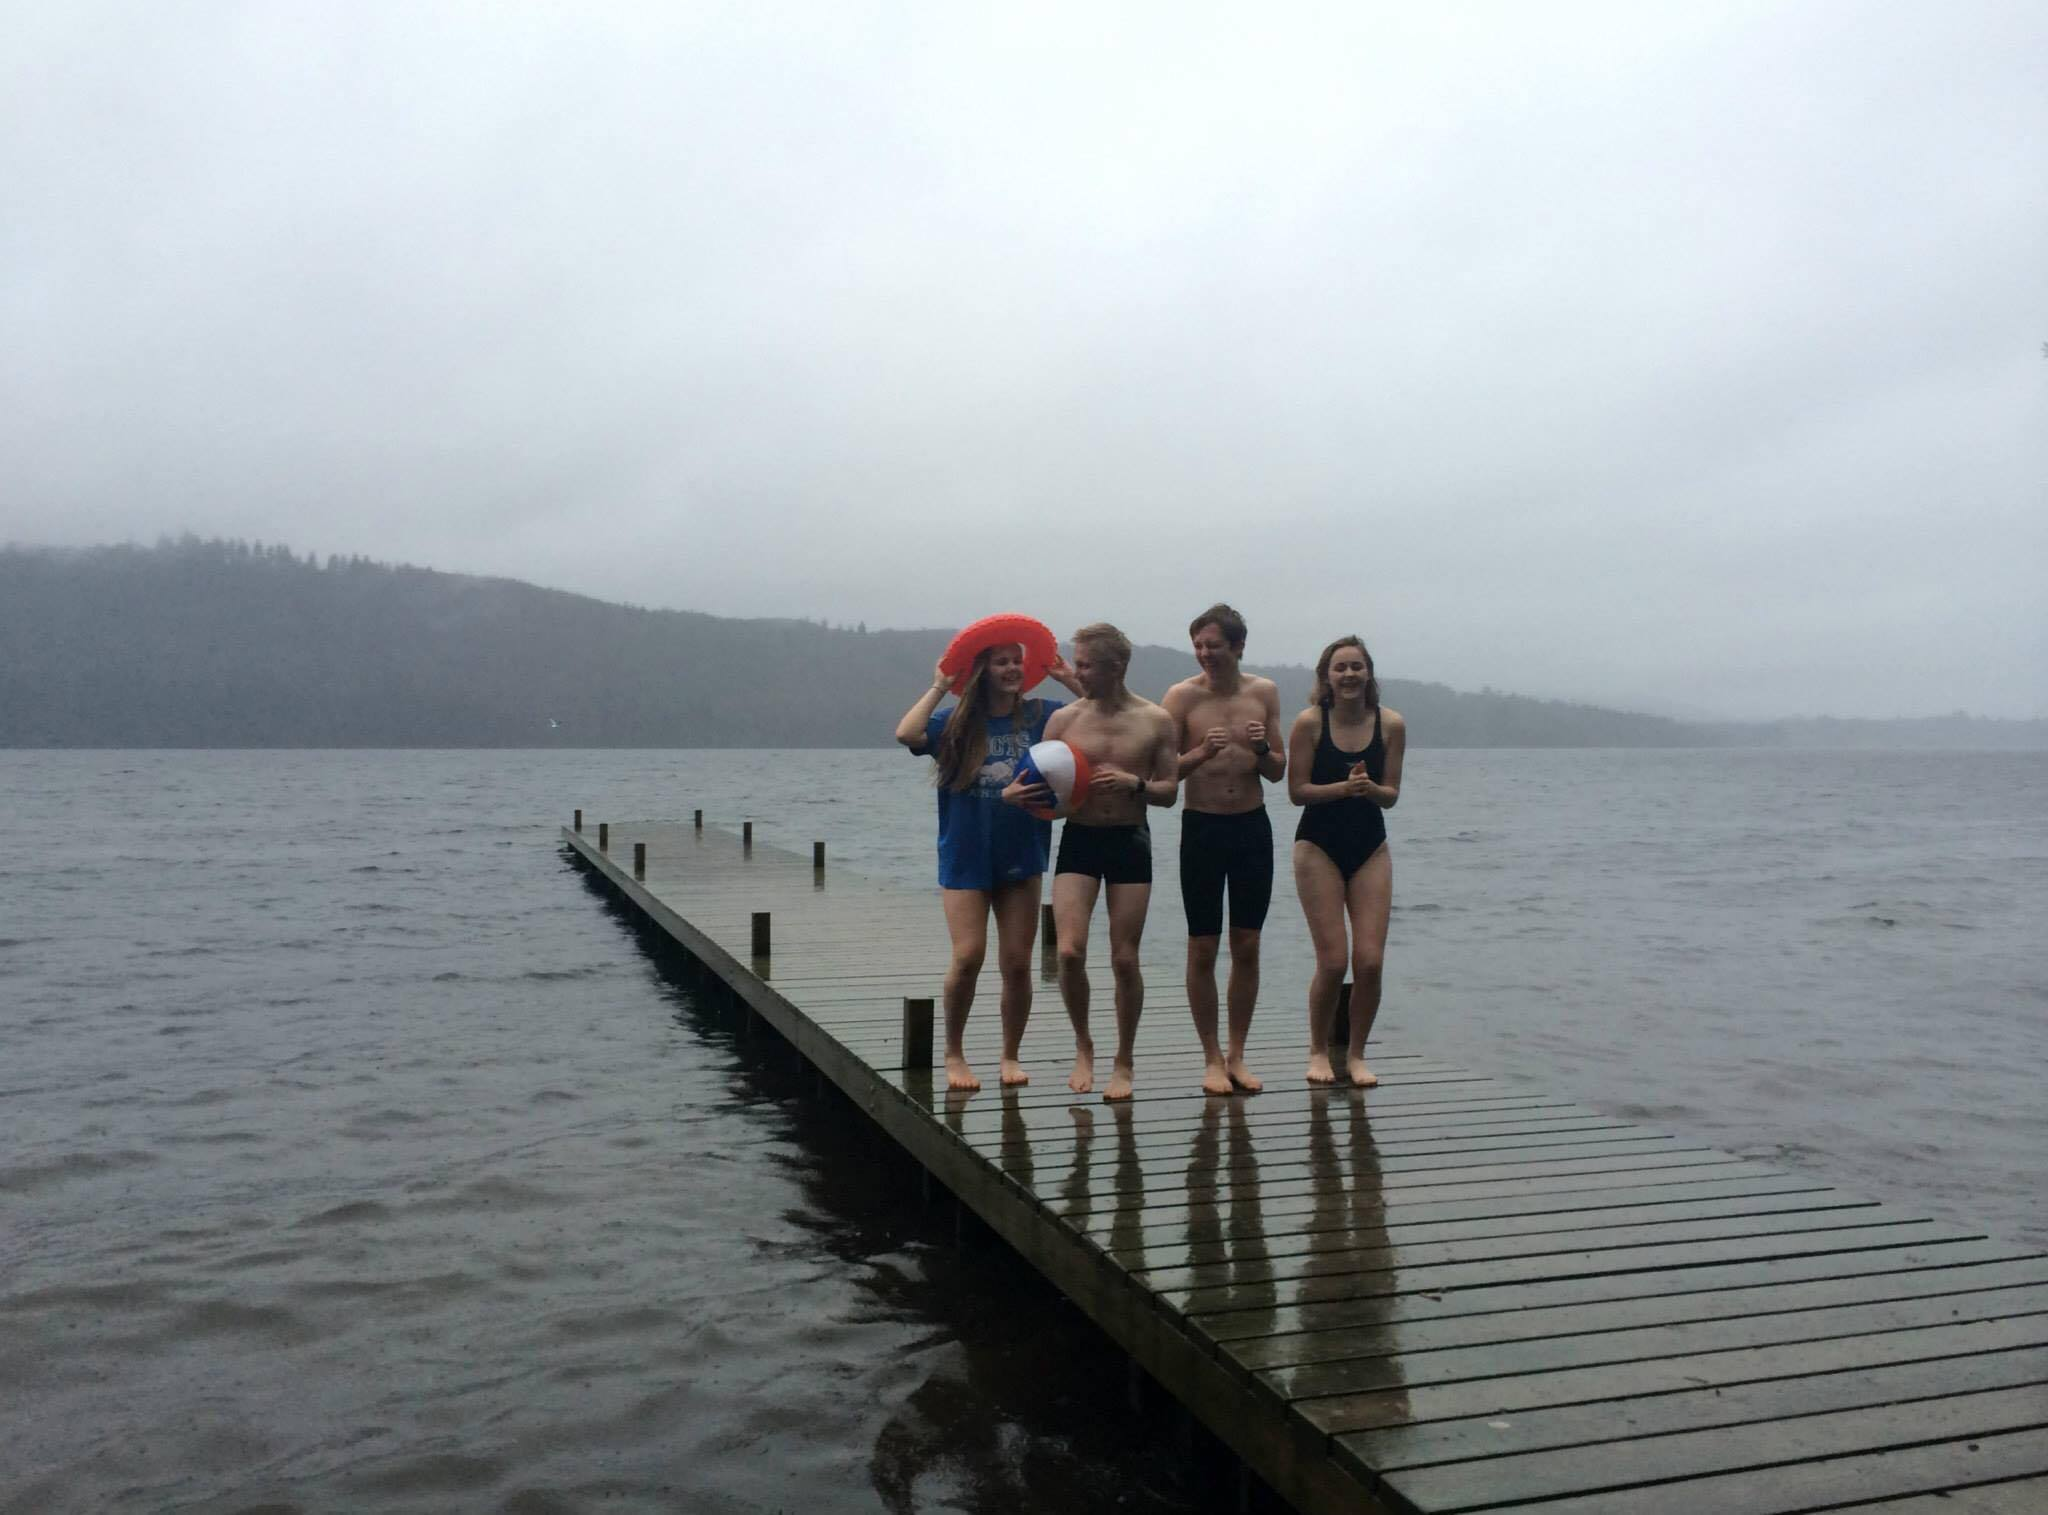 Cold water swimming: why the hell do so many people like doing it?